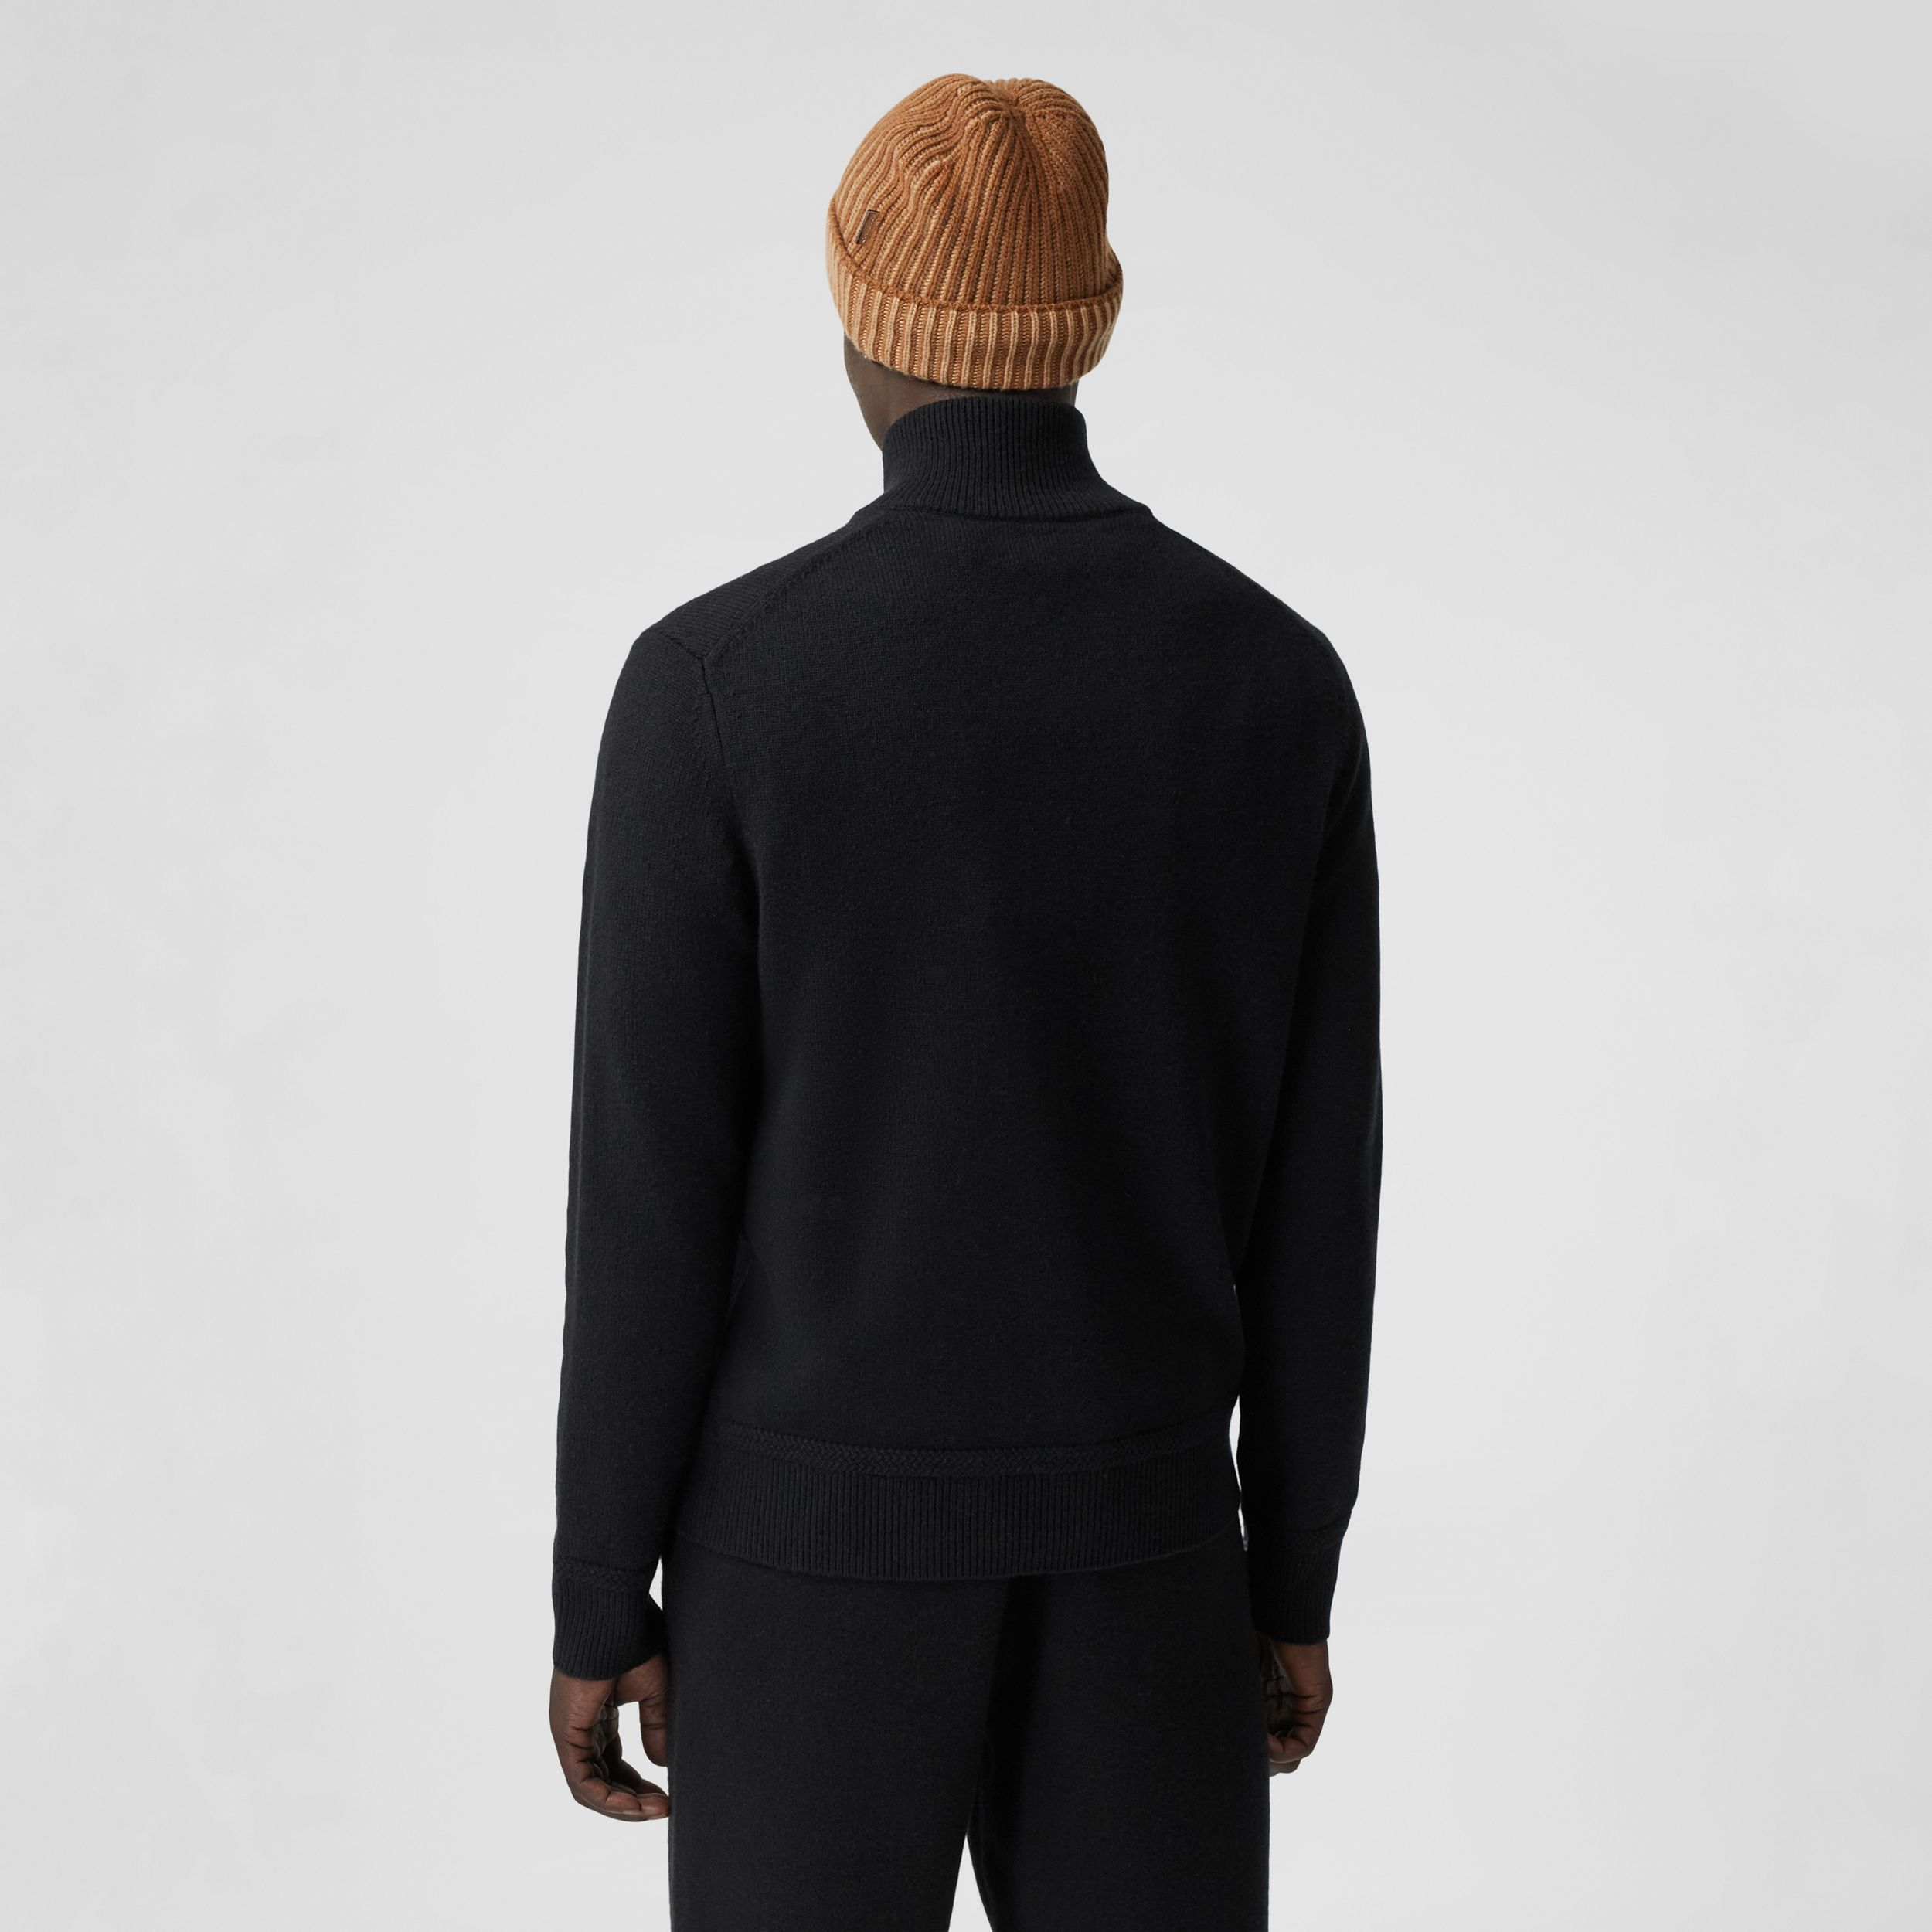 Monogram Motif Cashmere Funnel Neck Sweater in Black - Men | Burberry - 3